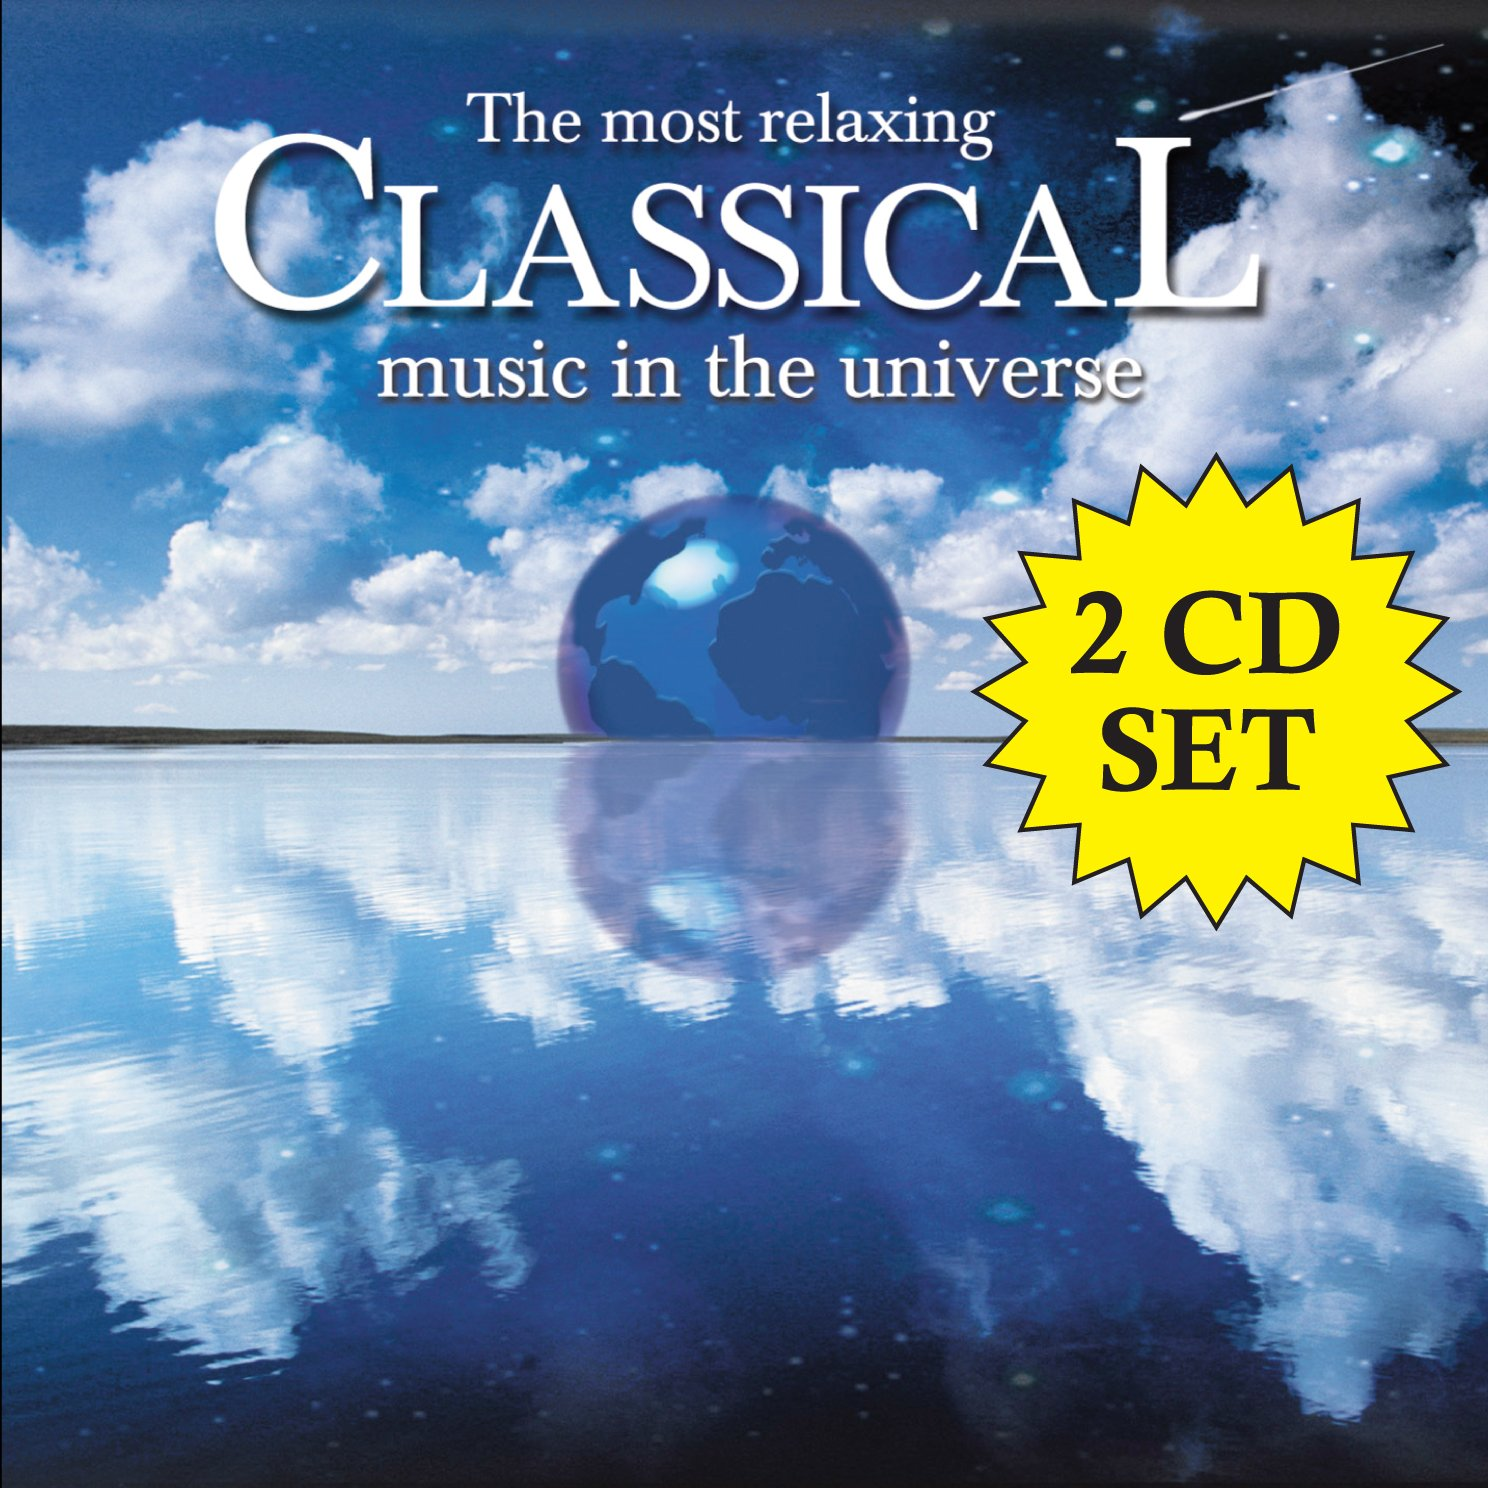 The Most Relaxing Classical Music in the Universe by Denon